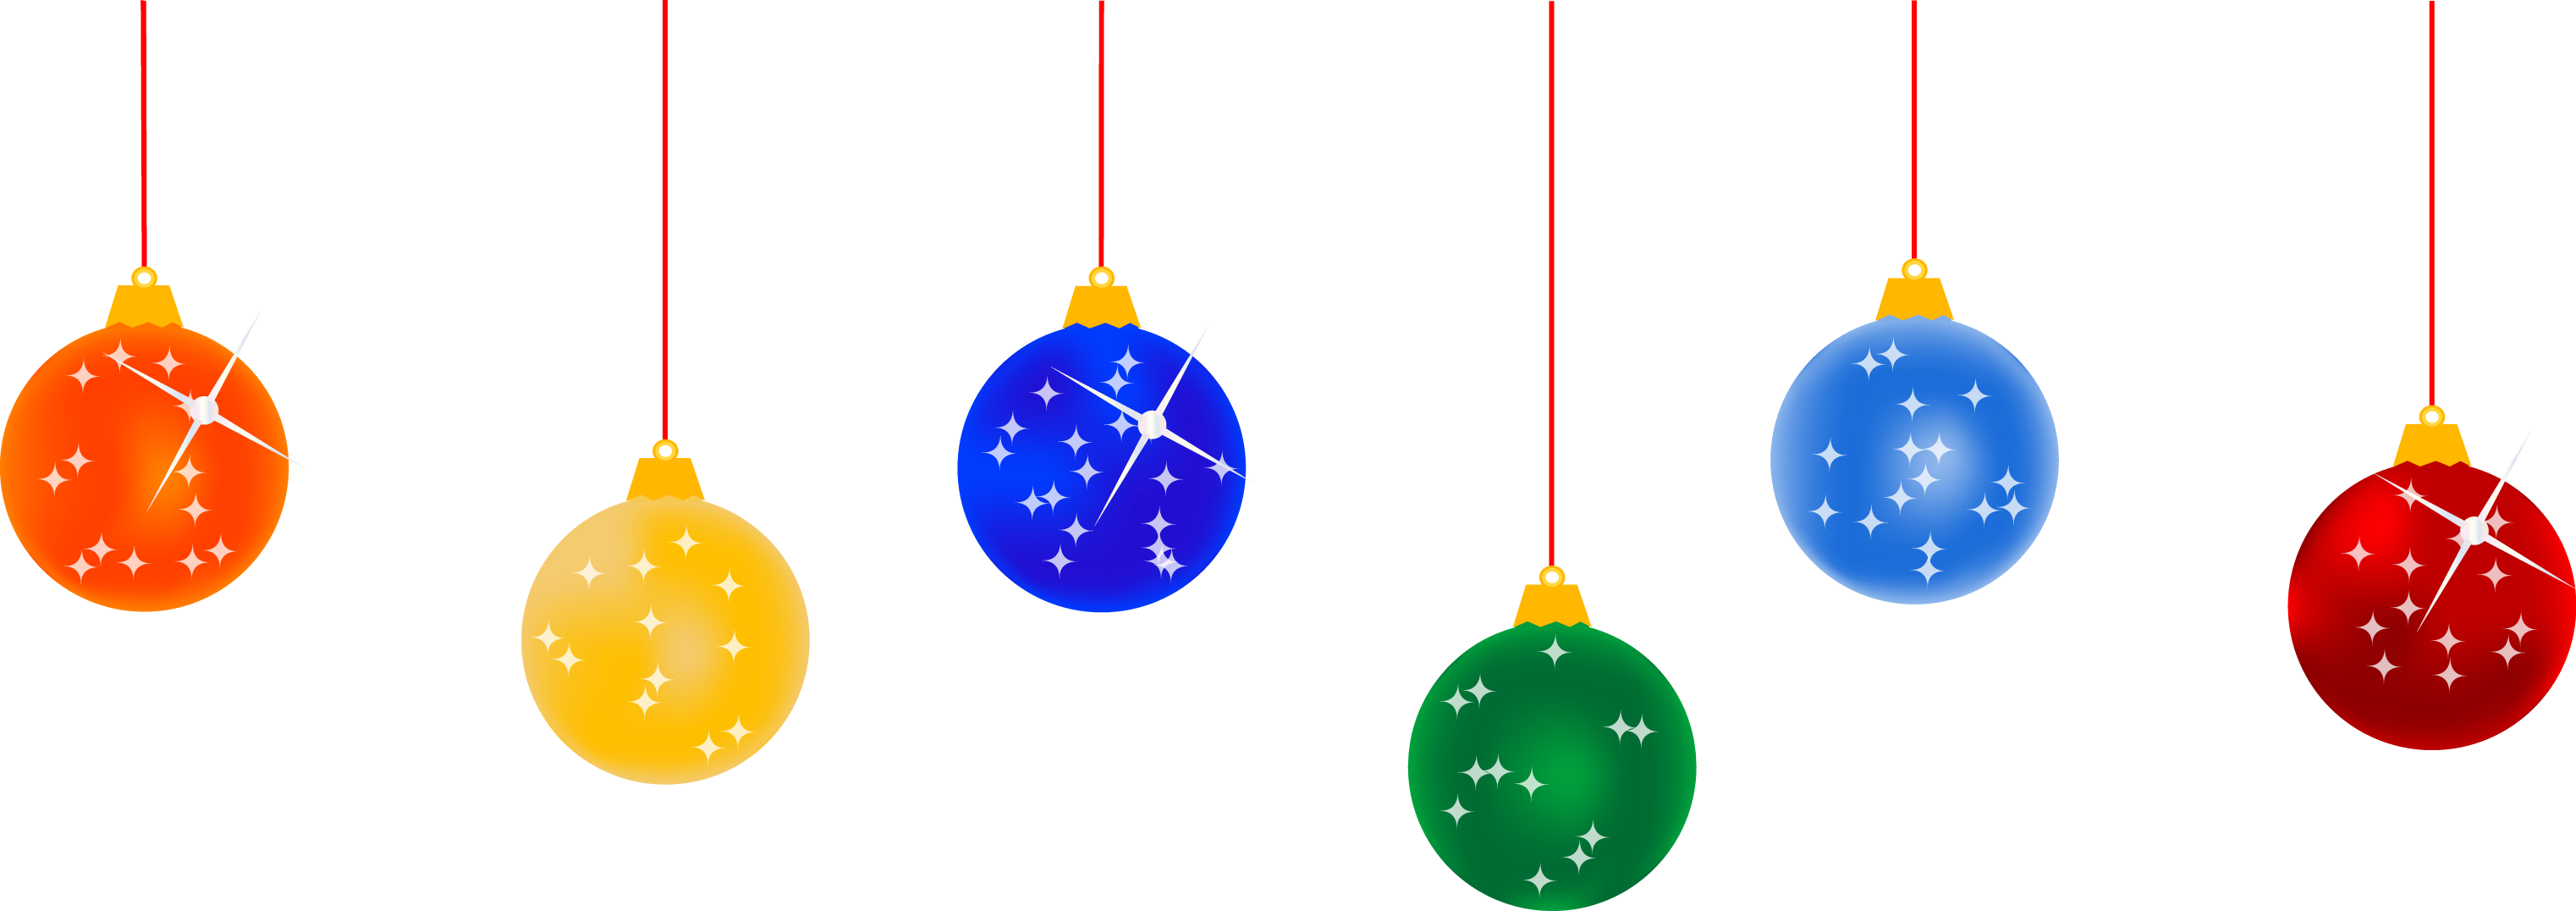 Religious vector christmas. Png transparent images all